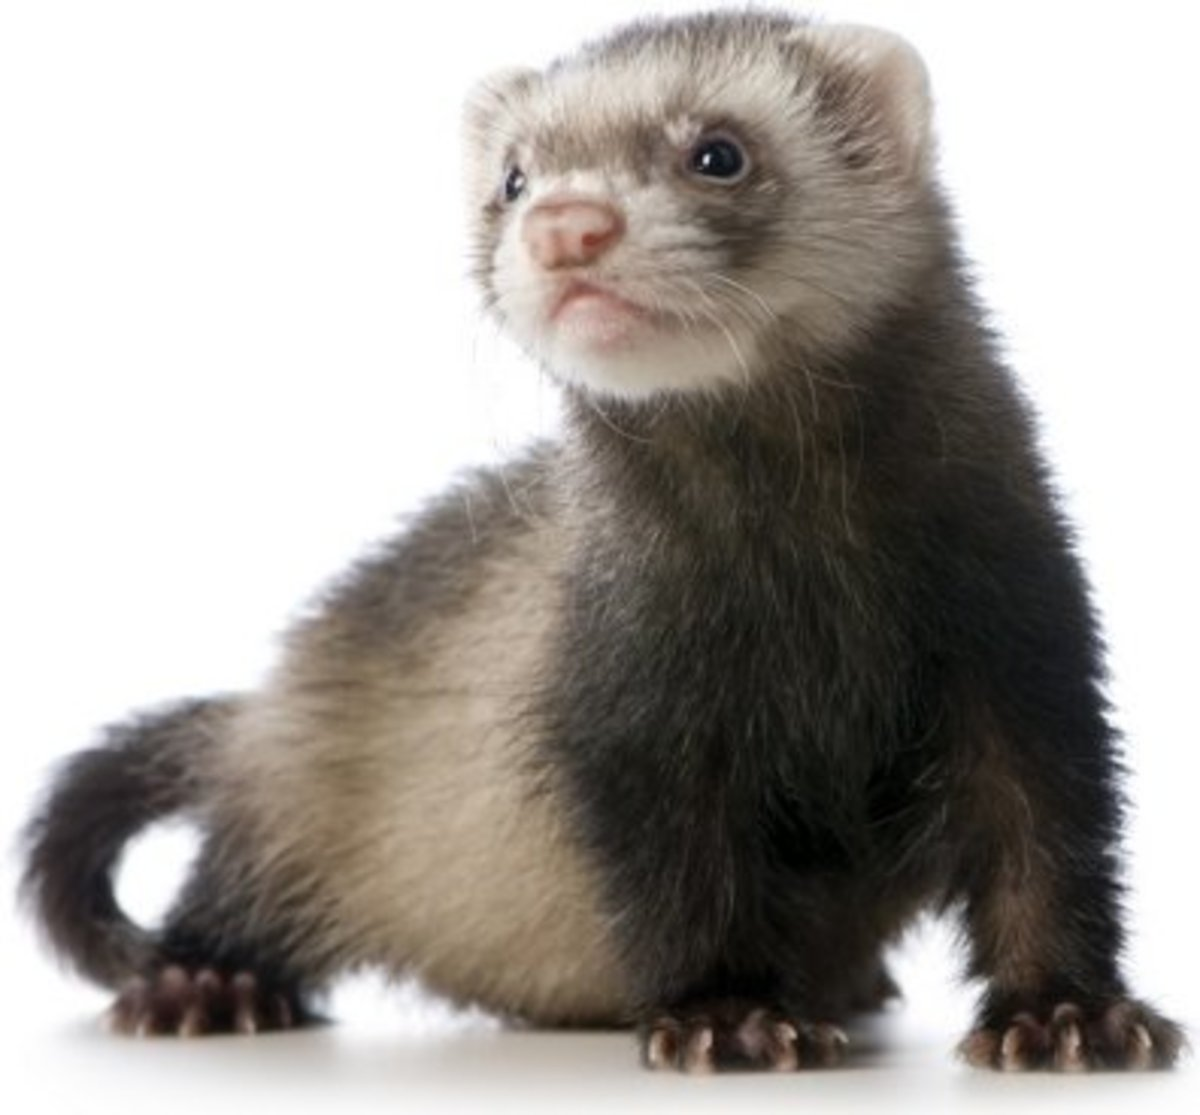 Ferrets were originally bred to hunt down vermin on farms and their services could be rented by traveling ferret wranglers who'd release them into the area for the day. Today ferrets are usually neutered, descented, and kept indoors as pets.